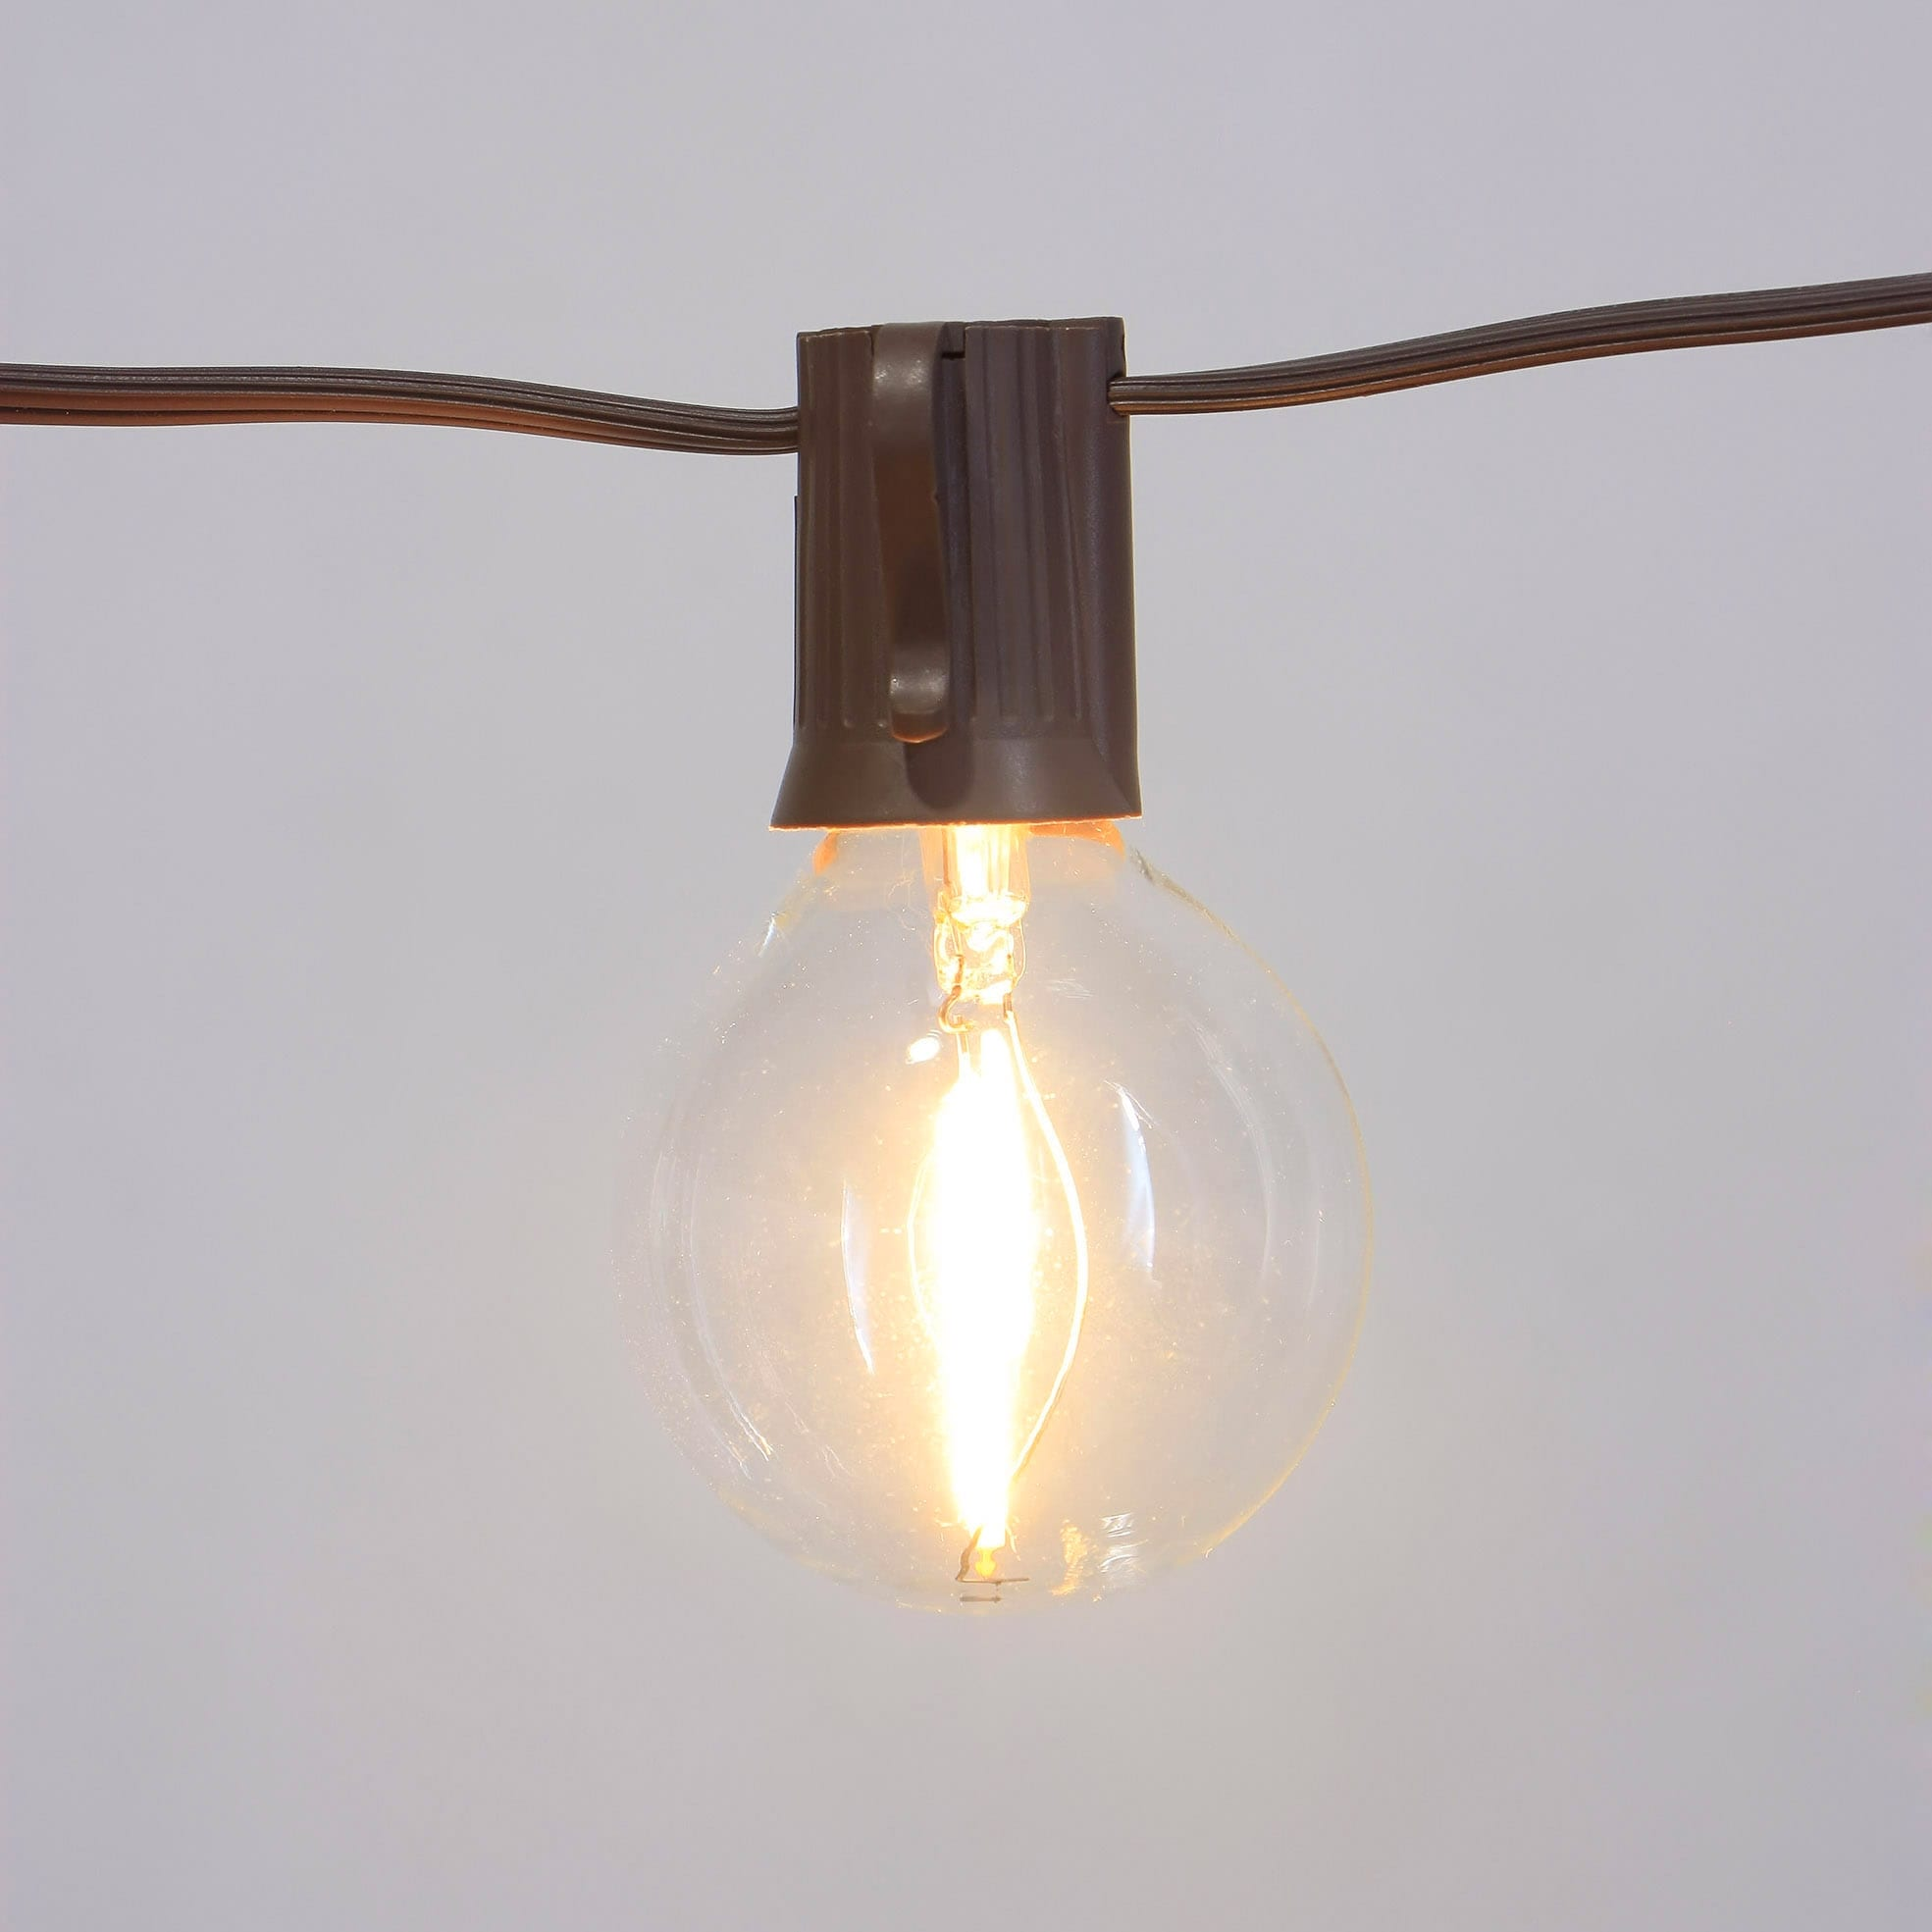 Incandescent String Light  MYHH41129 Featured Image